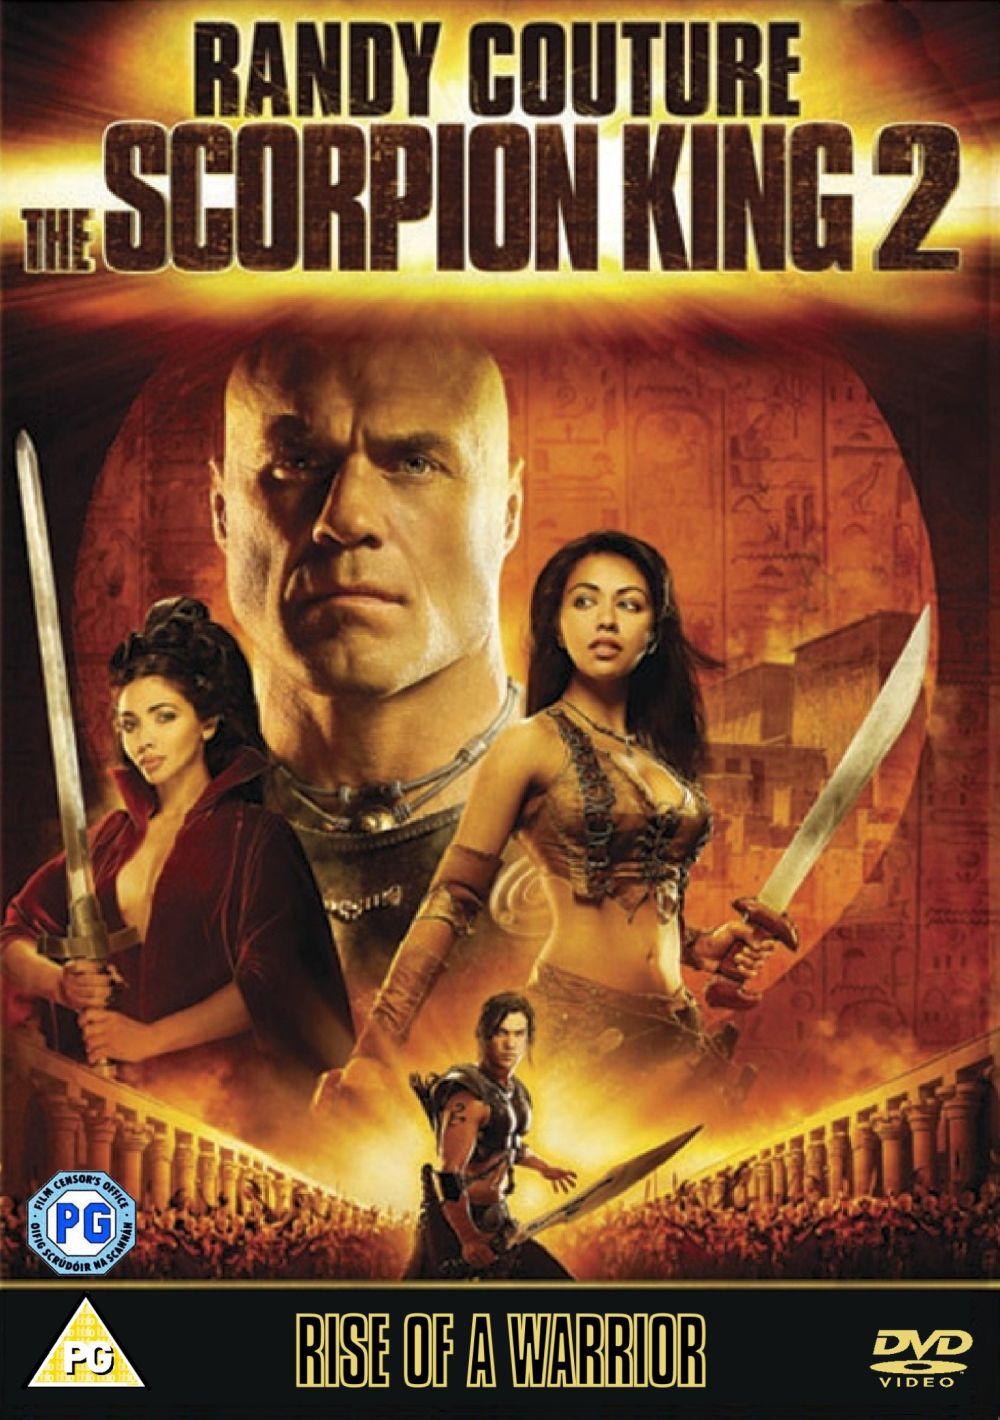 Phim Vua Bò Cạp 2 - The Scorpion King Ii: Rise Of A Warrior